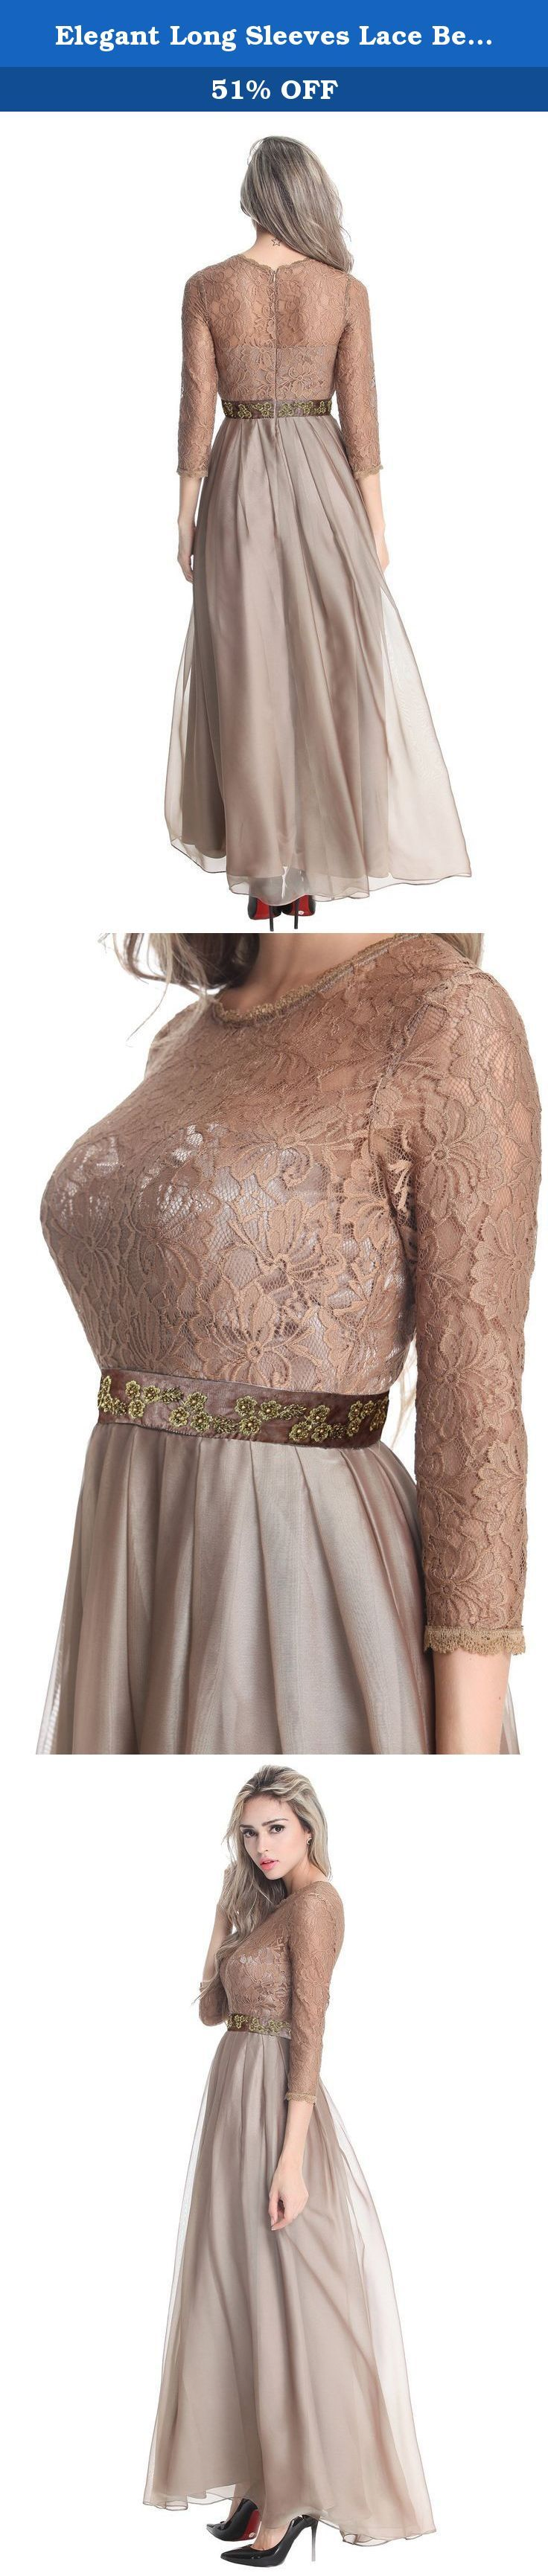 Elegant Long Sleeves Lace Beaded Women Chiffon Dress 6 Brown. Top Coffee Lace with soft Chiffon fabric, 3/4 sleeves ,baeded embroidery sequin flower desgin, fit wedding bridal, formal prom , 3 colours for choose, grey, Coffee, Dark Blue.